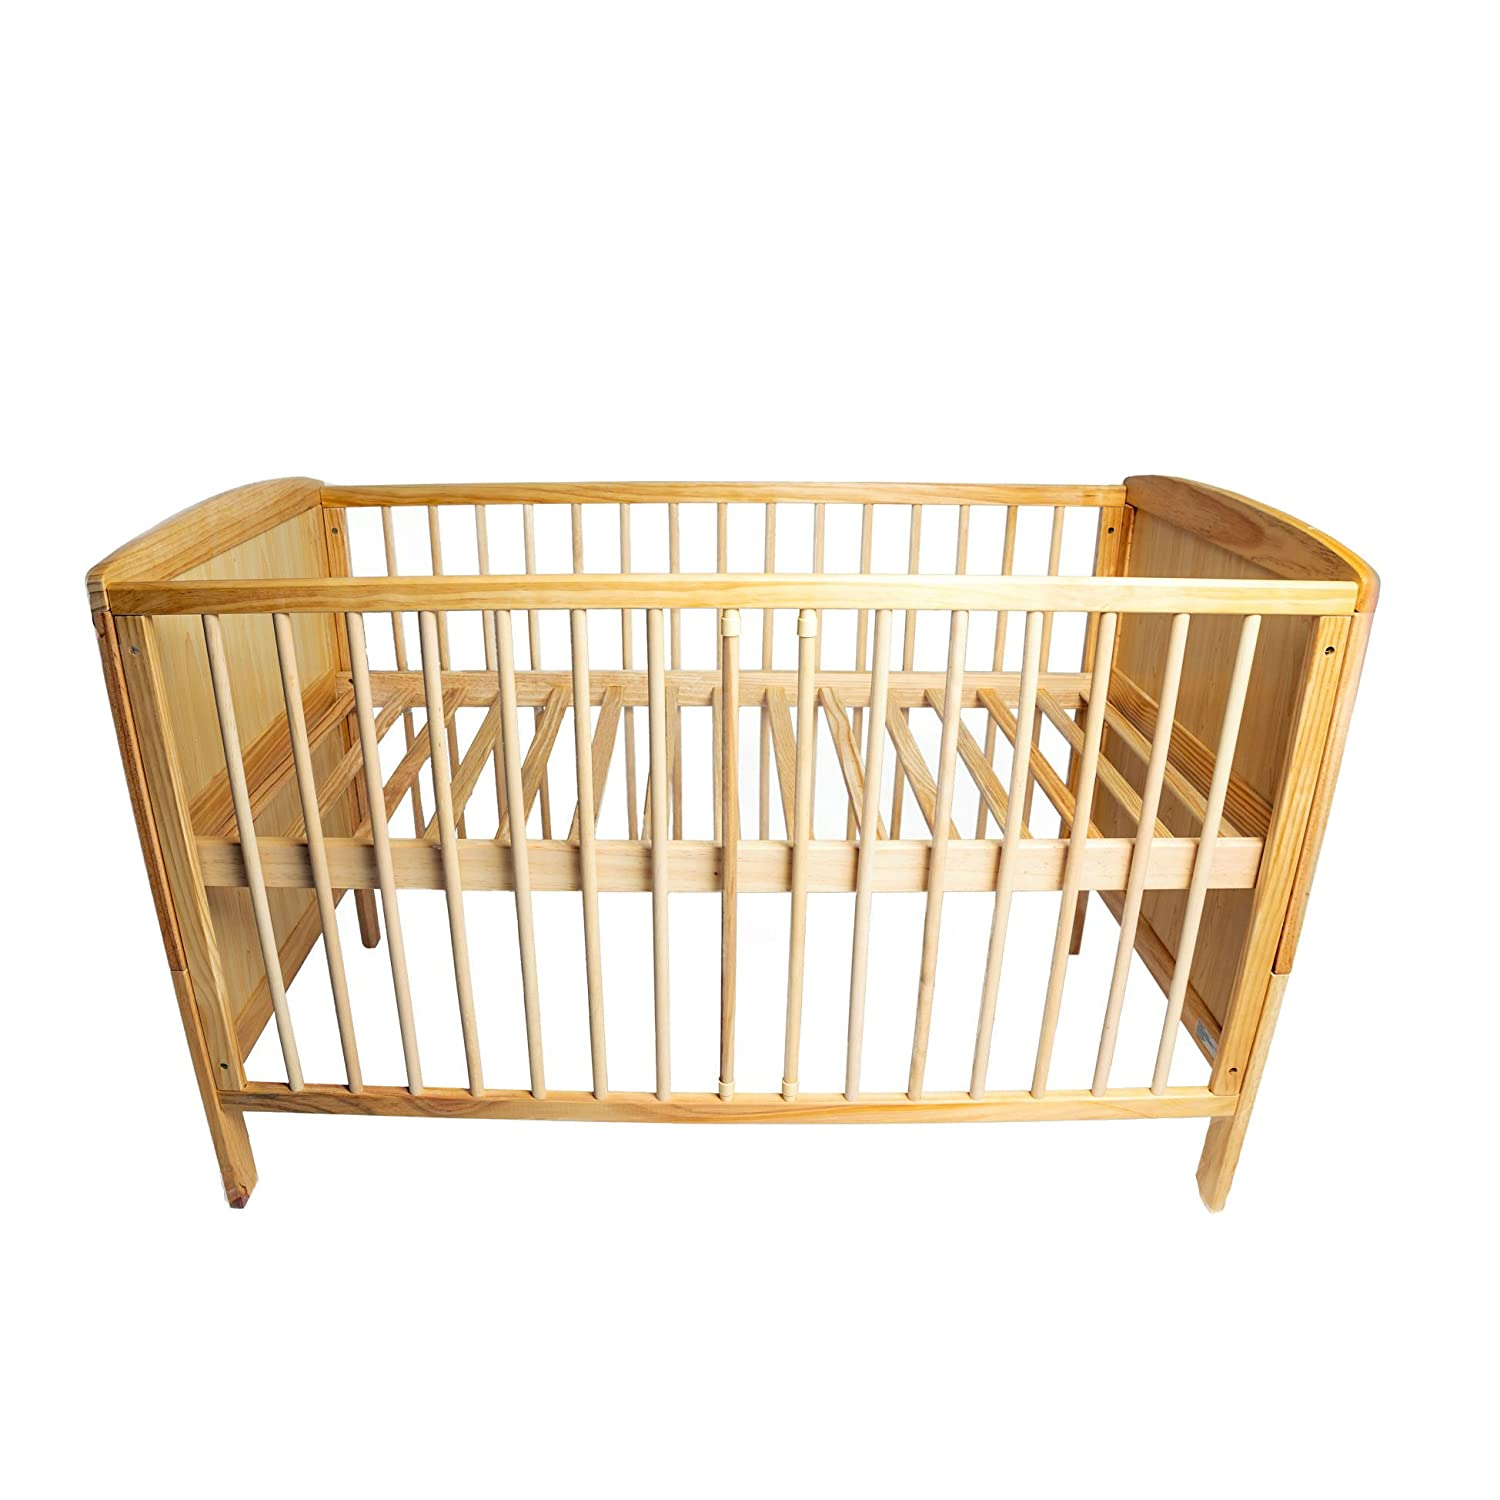 Wooden cot bed 120 x 60 cm Bambino World